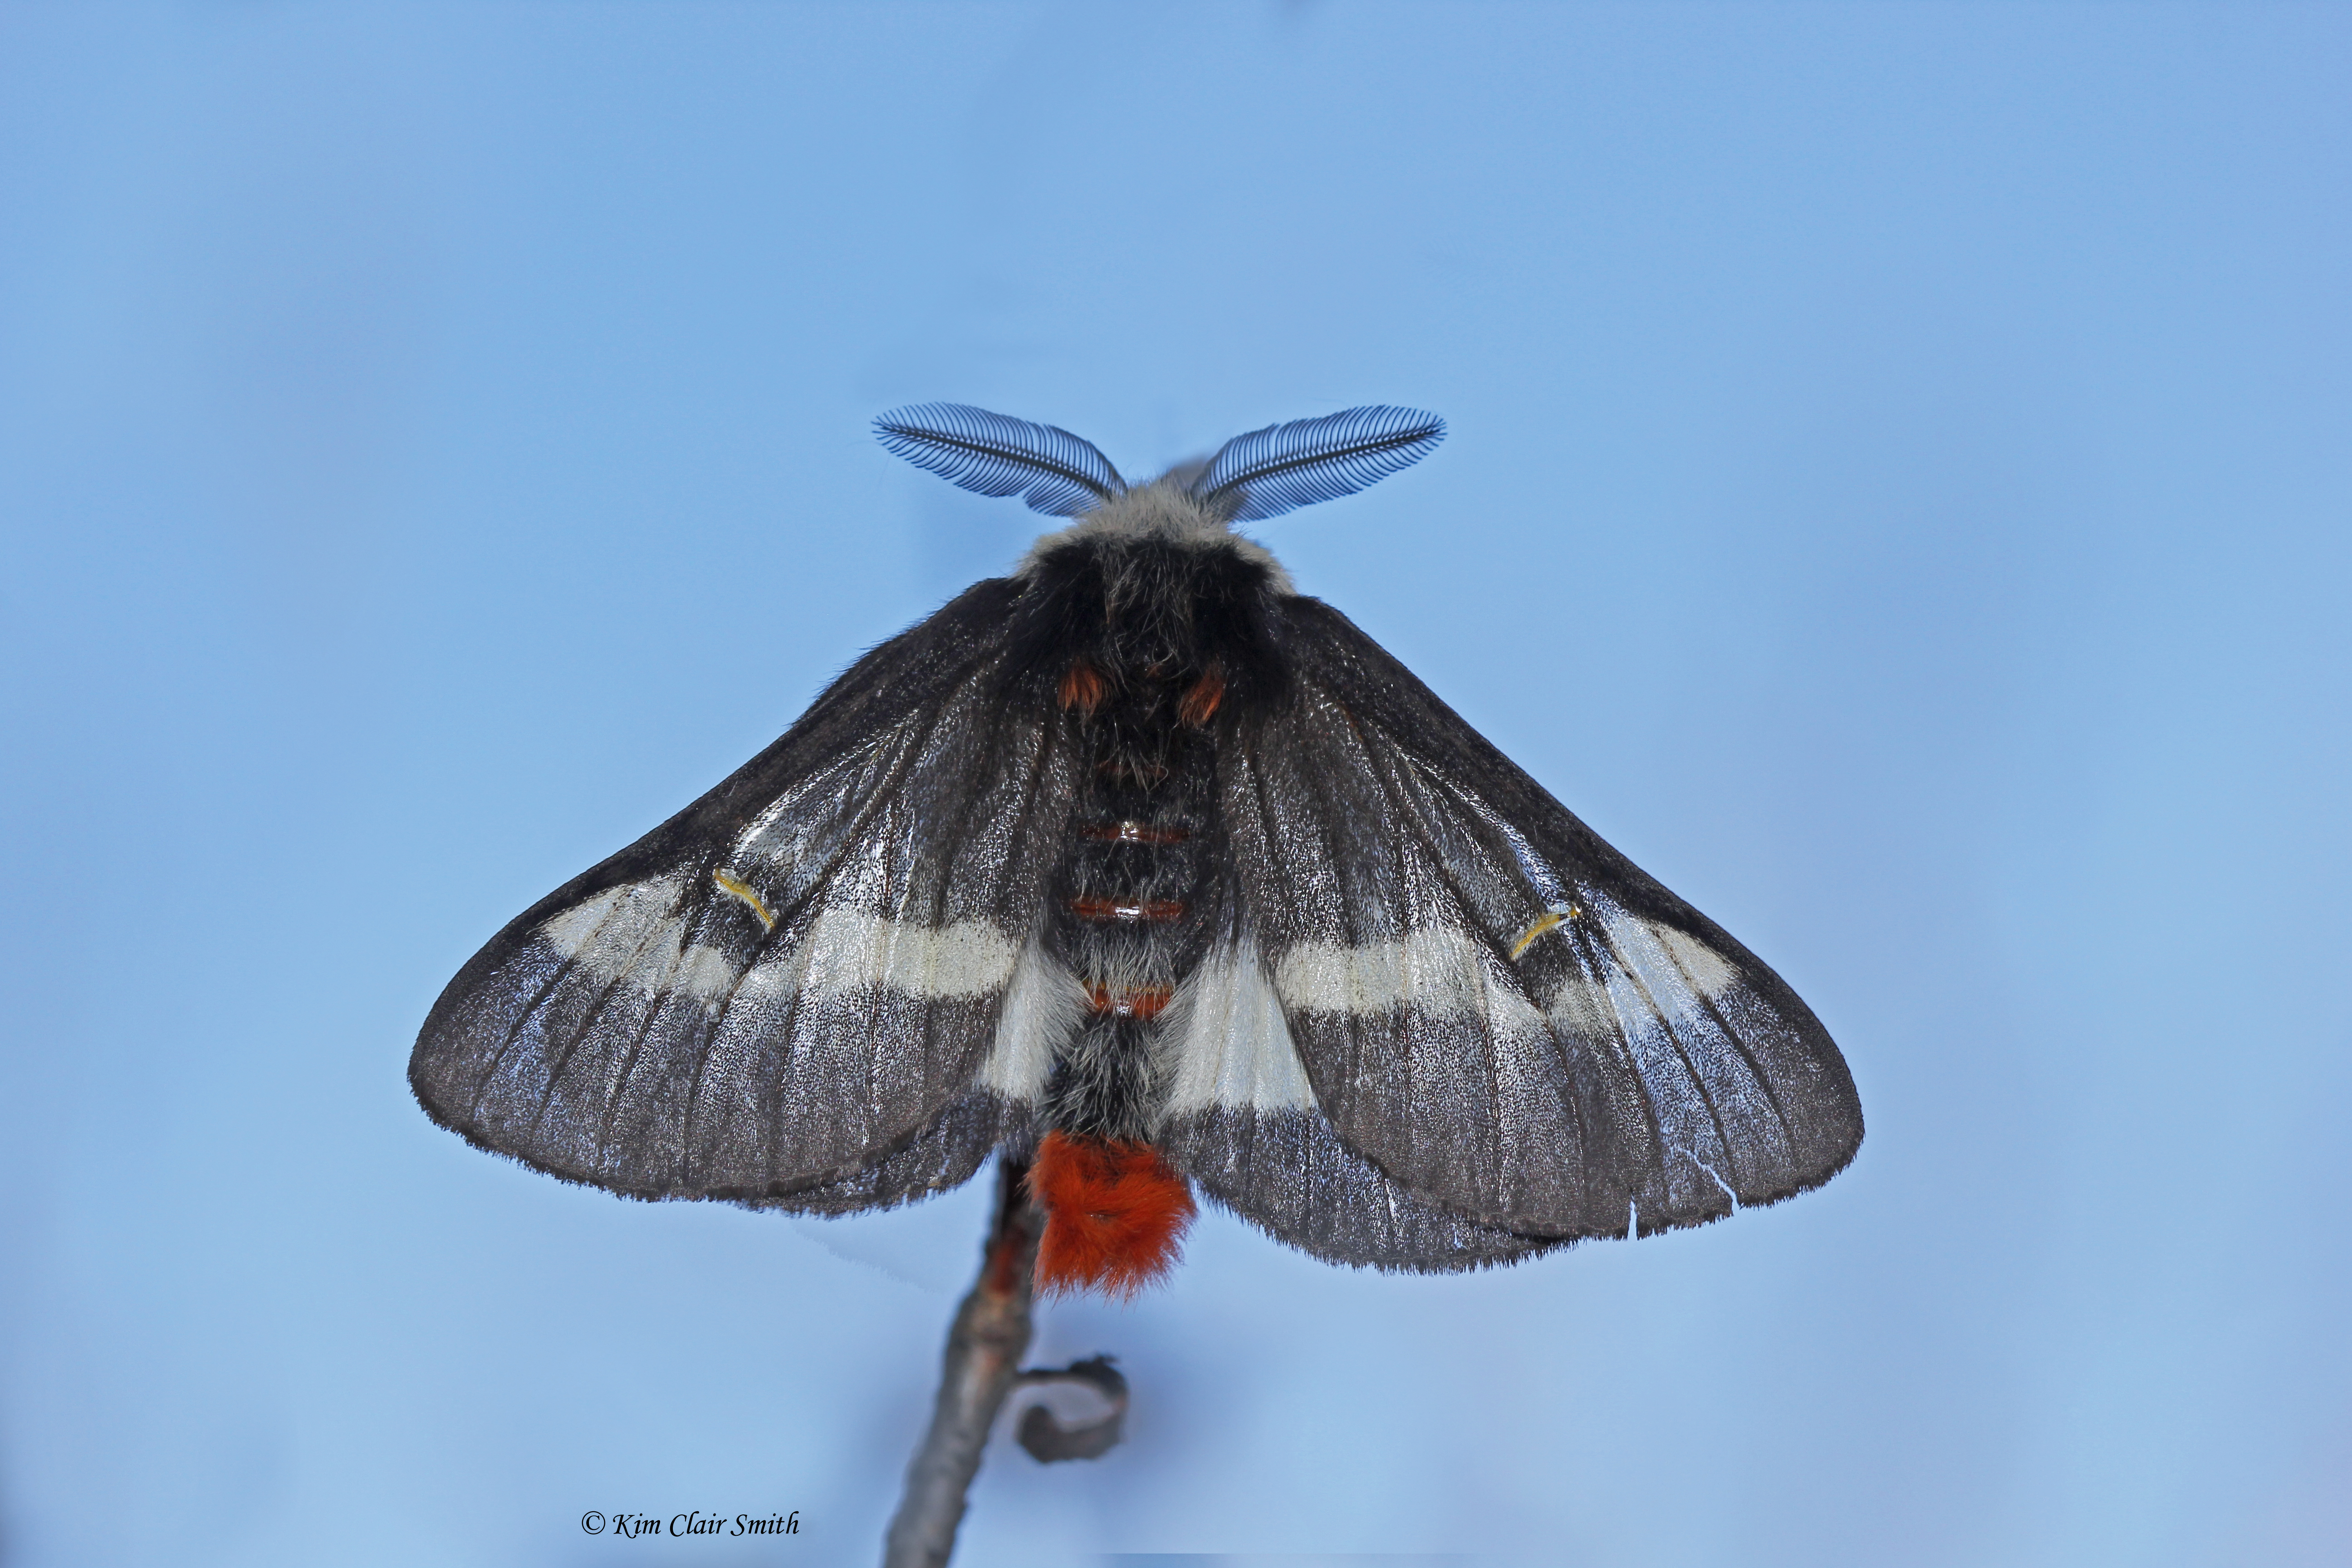 Buck moth dorsal view of spread wings with antennae